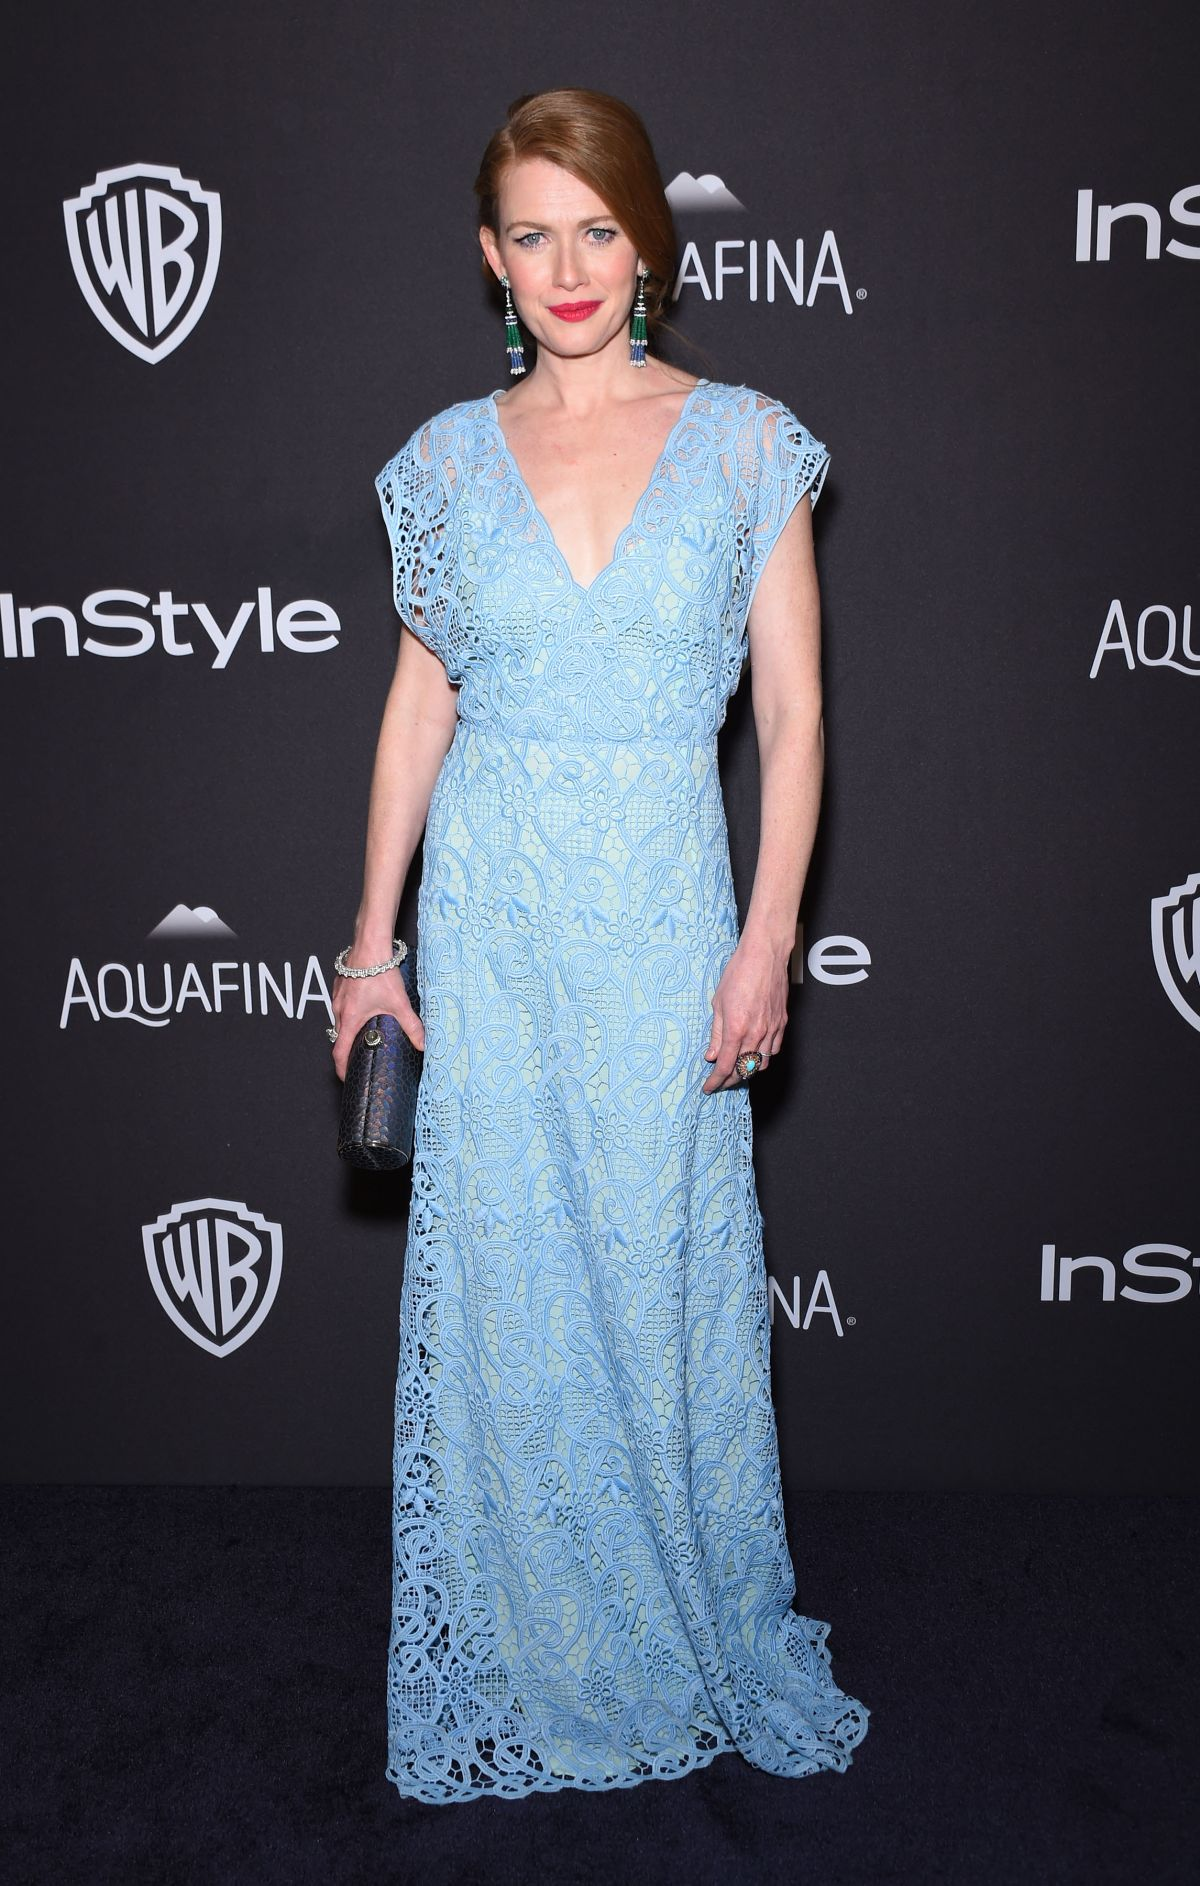 MIREILLE ENOS at Instyle and Warner Bros. 2016 Golden Globe Awards Post-party in Beverly Hills 01/10/2016